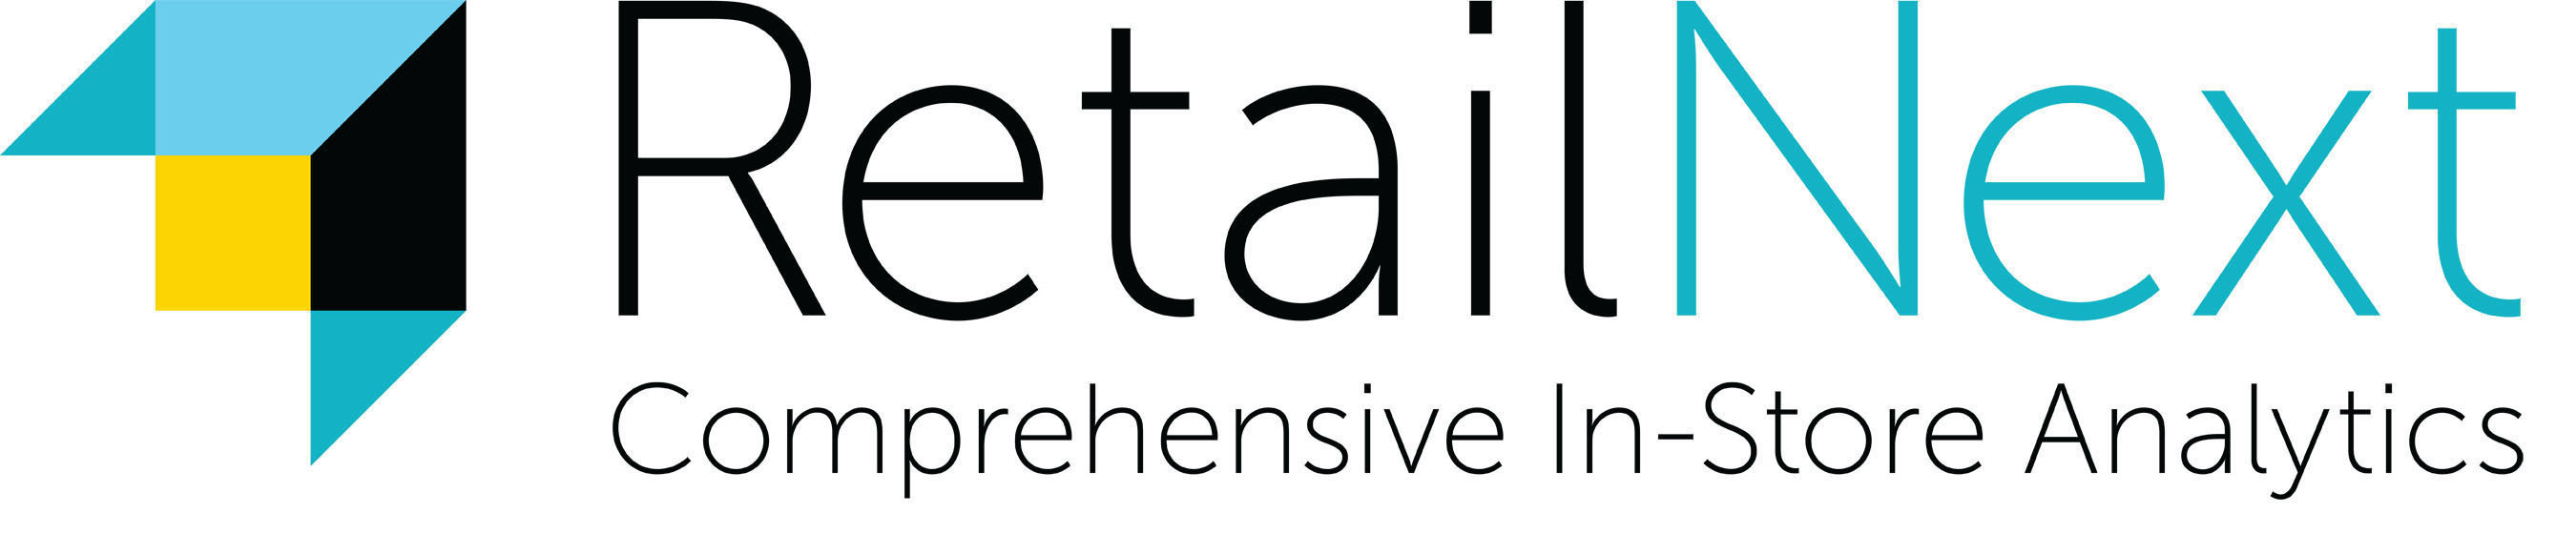 Global Retail Thought Leaders to Converge at 6th Annual RetailNext Executive Forum